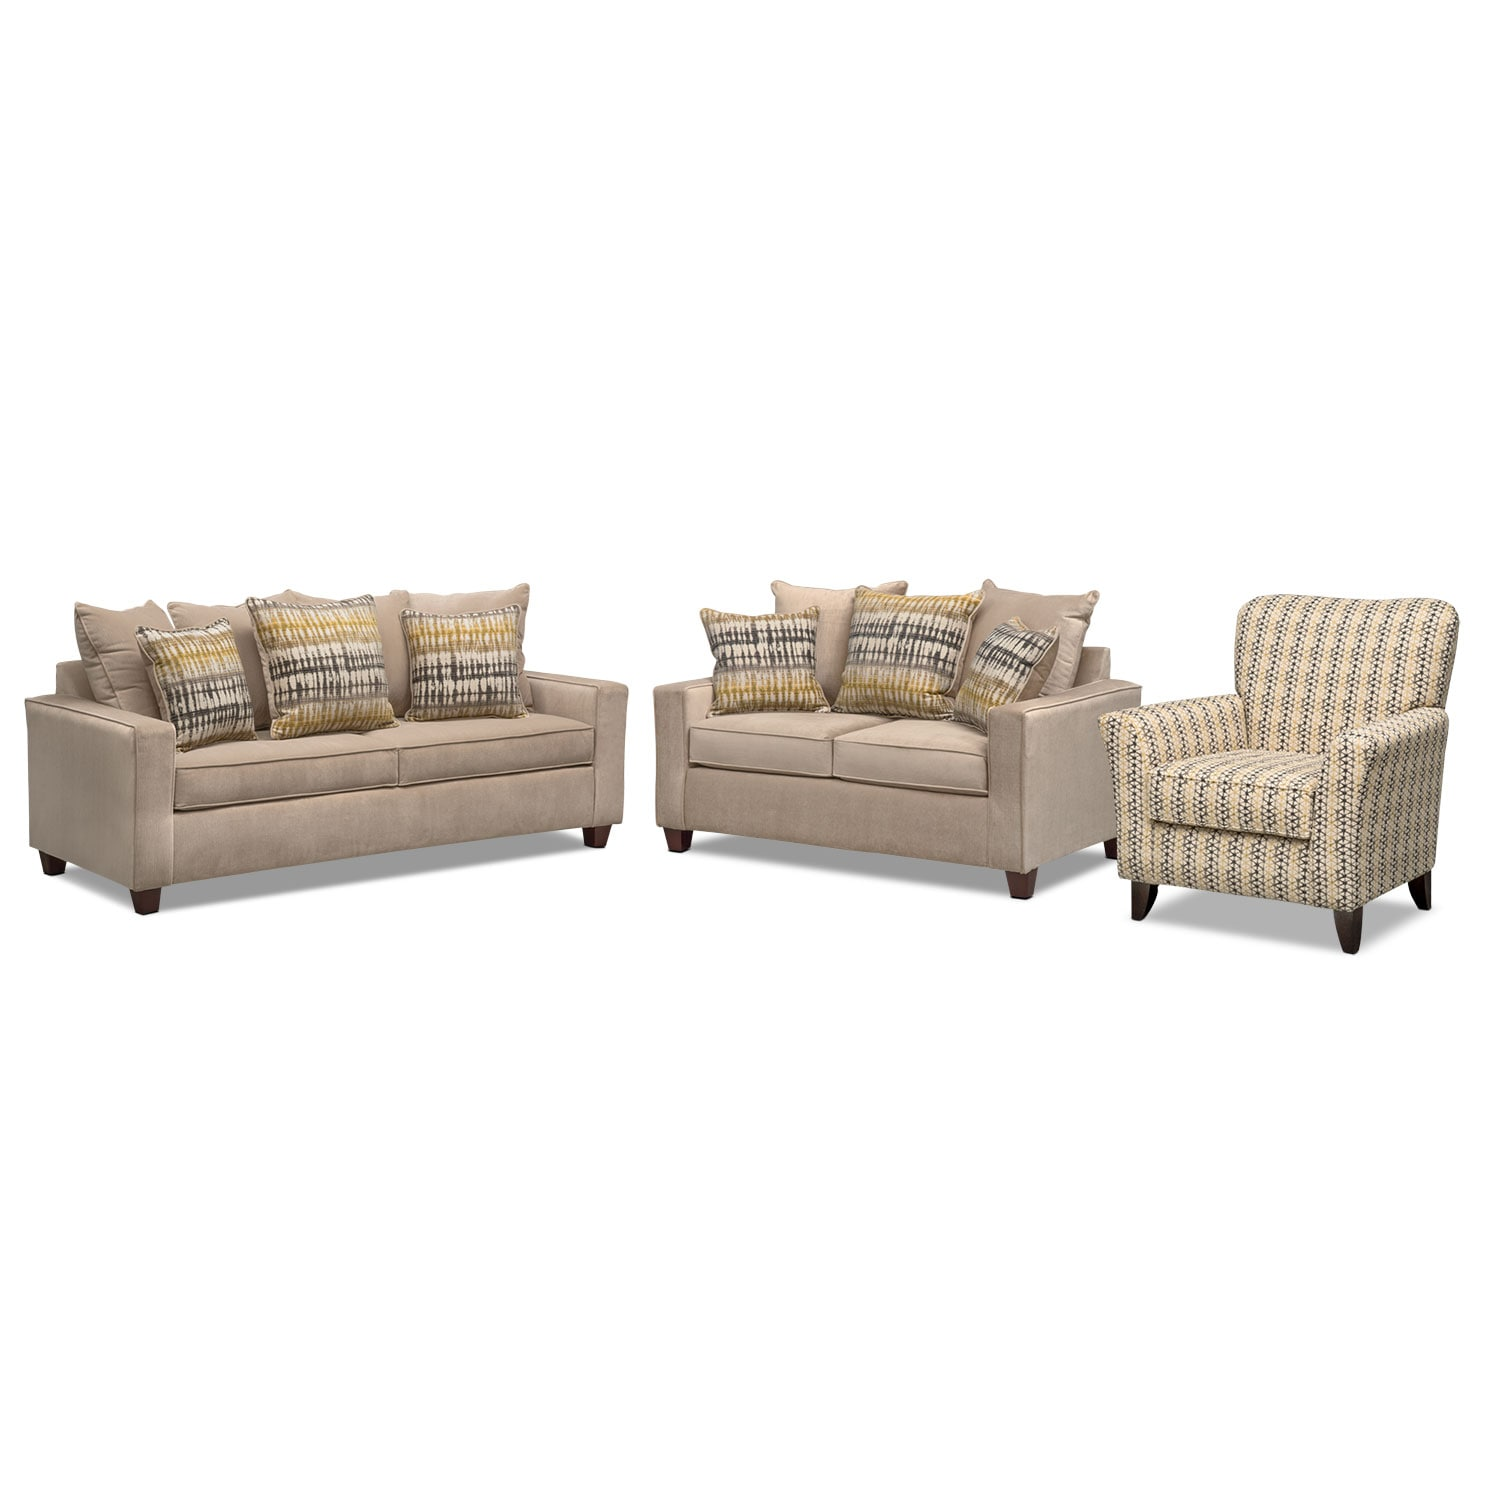 Bryden sofa loveseat and accent chair set american signature furniture